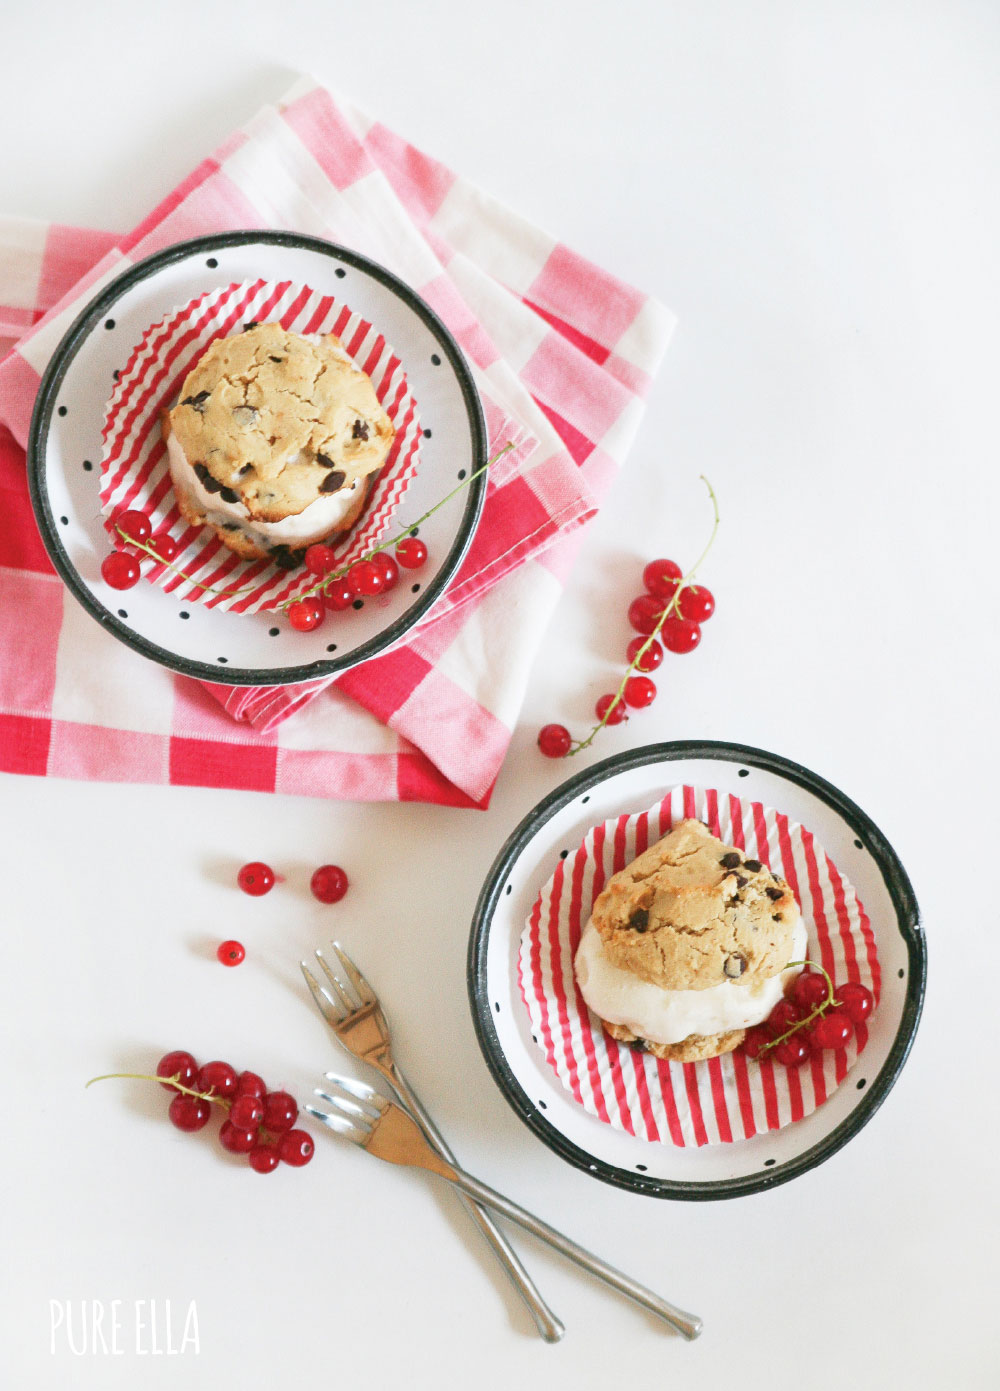 Pure-Ella-gluten-free-and-vegan-So-Delicious-Chocolate-Chip-Vanilla-Ice-Cream-Sandwiches10